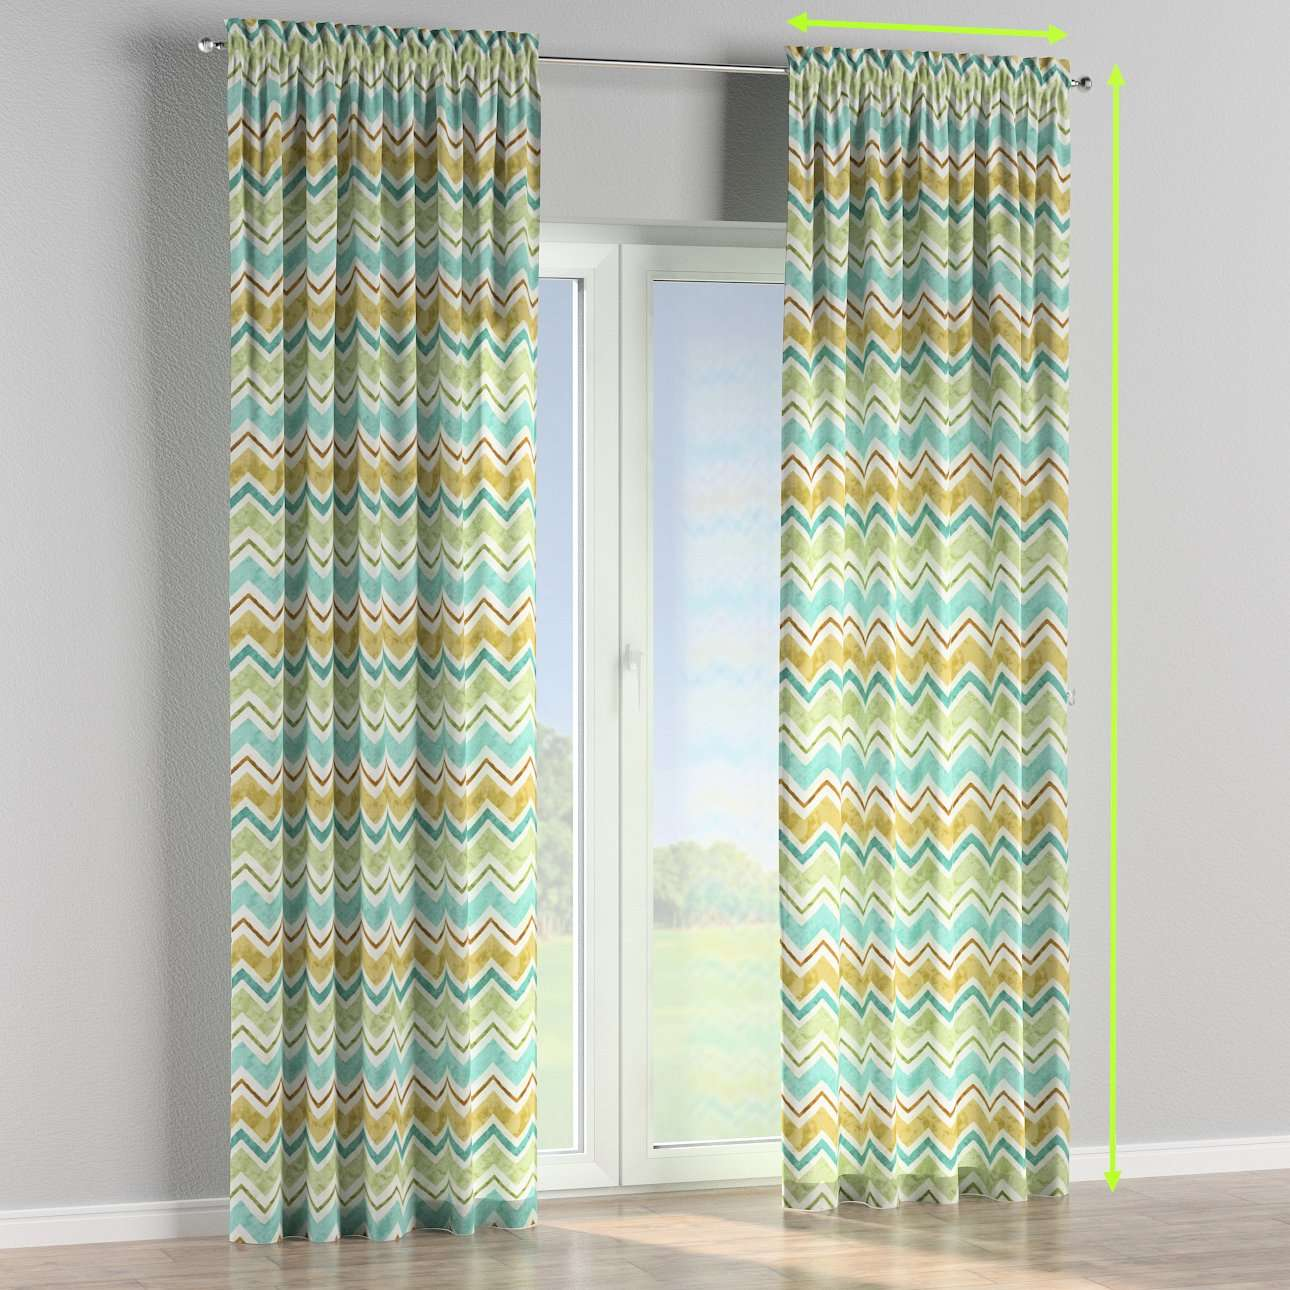 Slot and frill lined curtains in collection Acapulco, fabric: 141-41